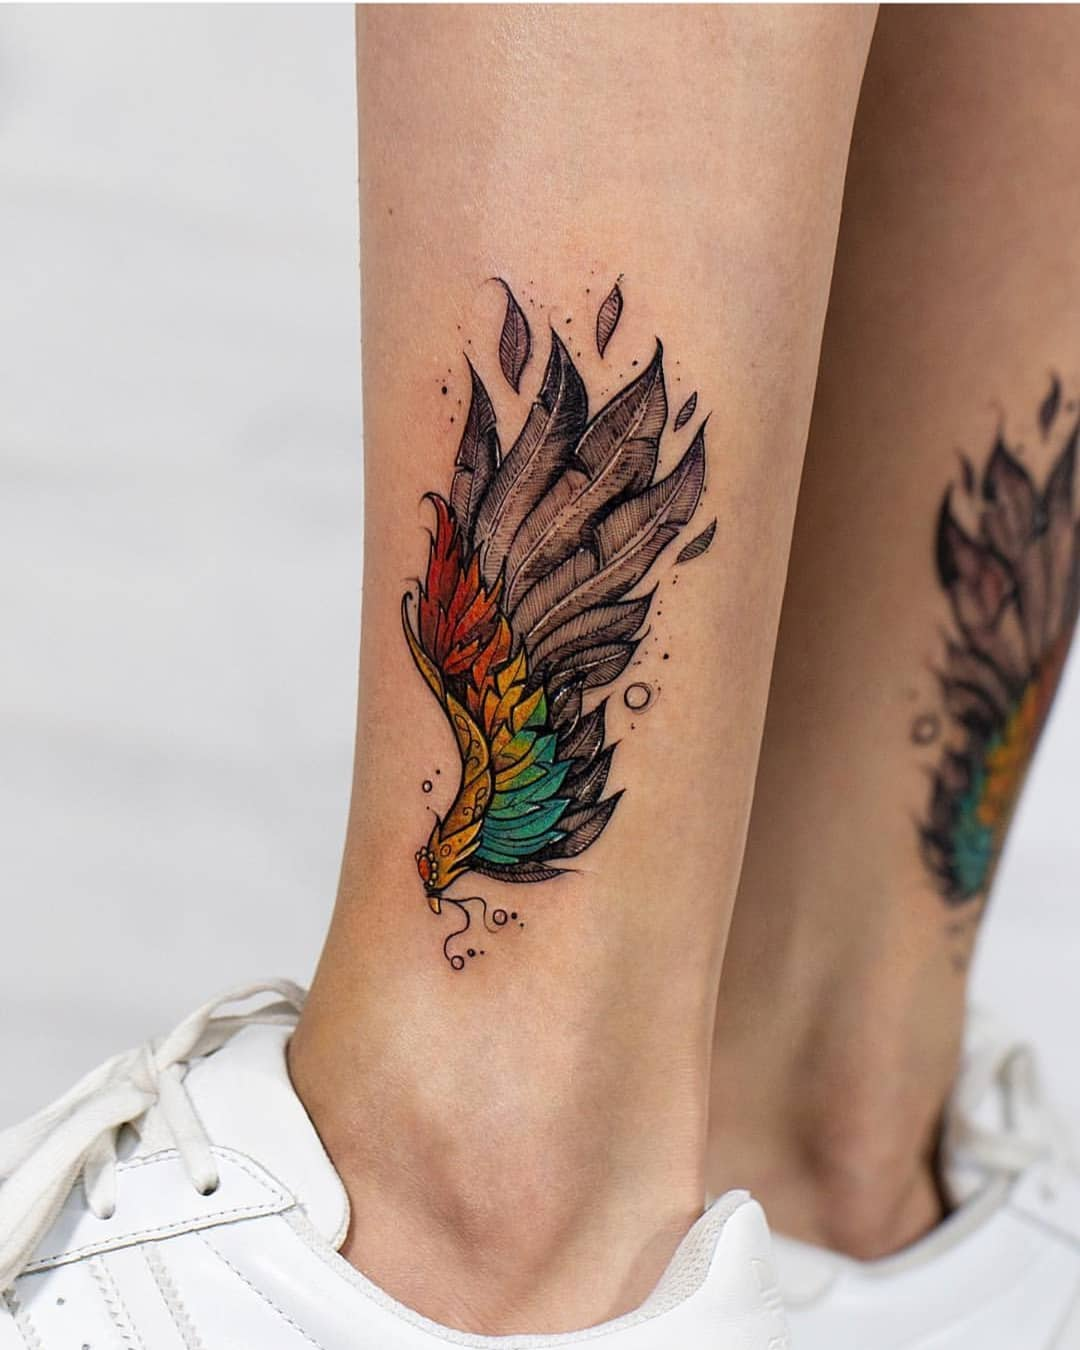 27-tattoo-ideas-wings-tattoo-design